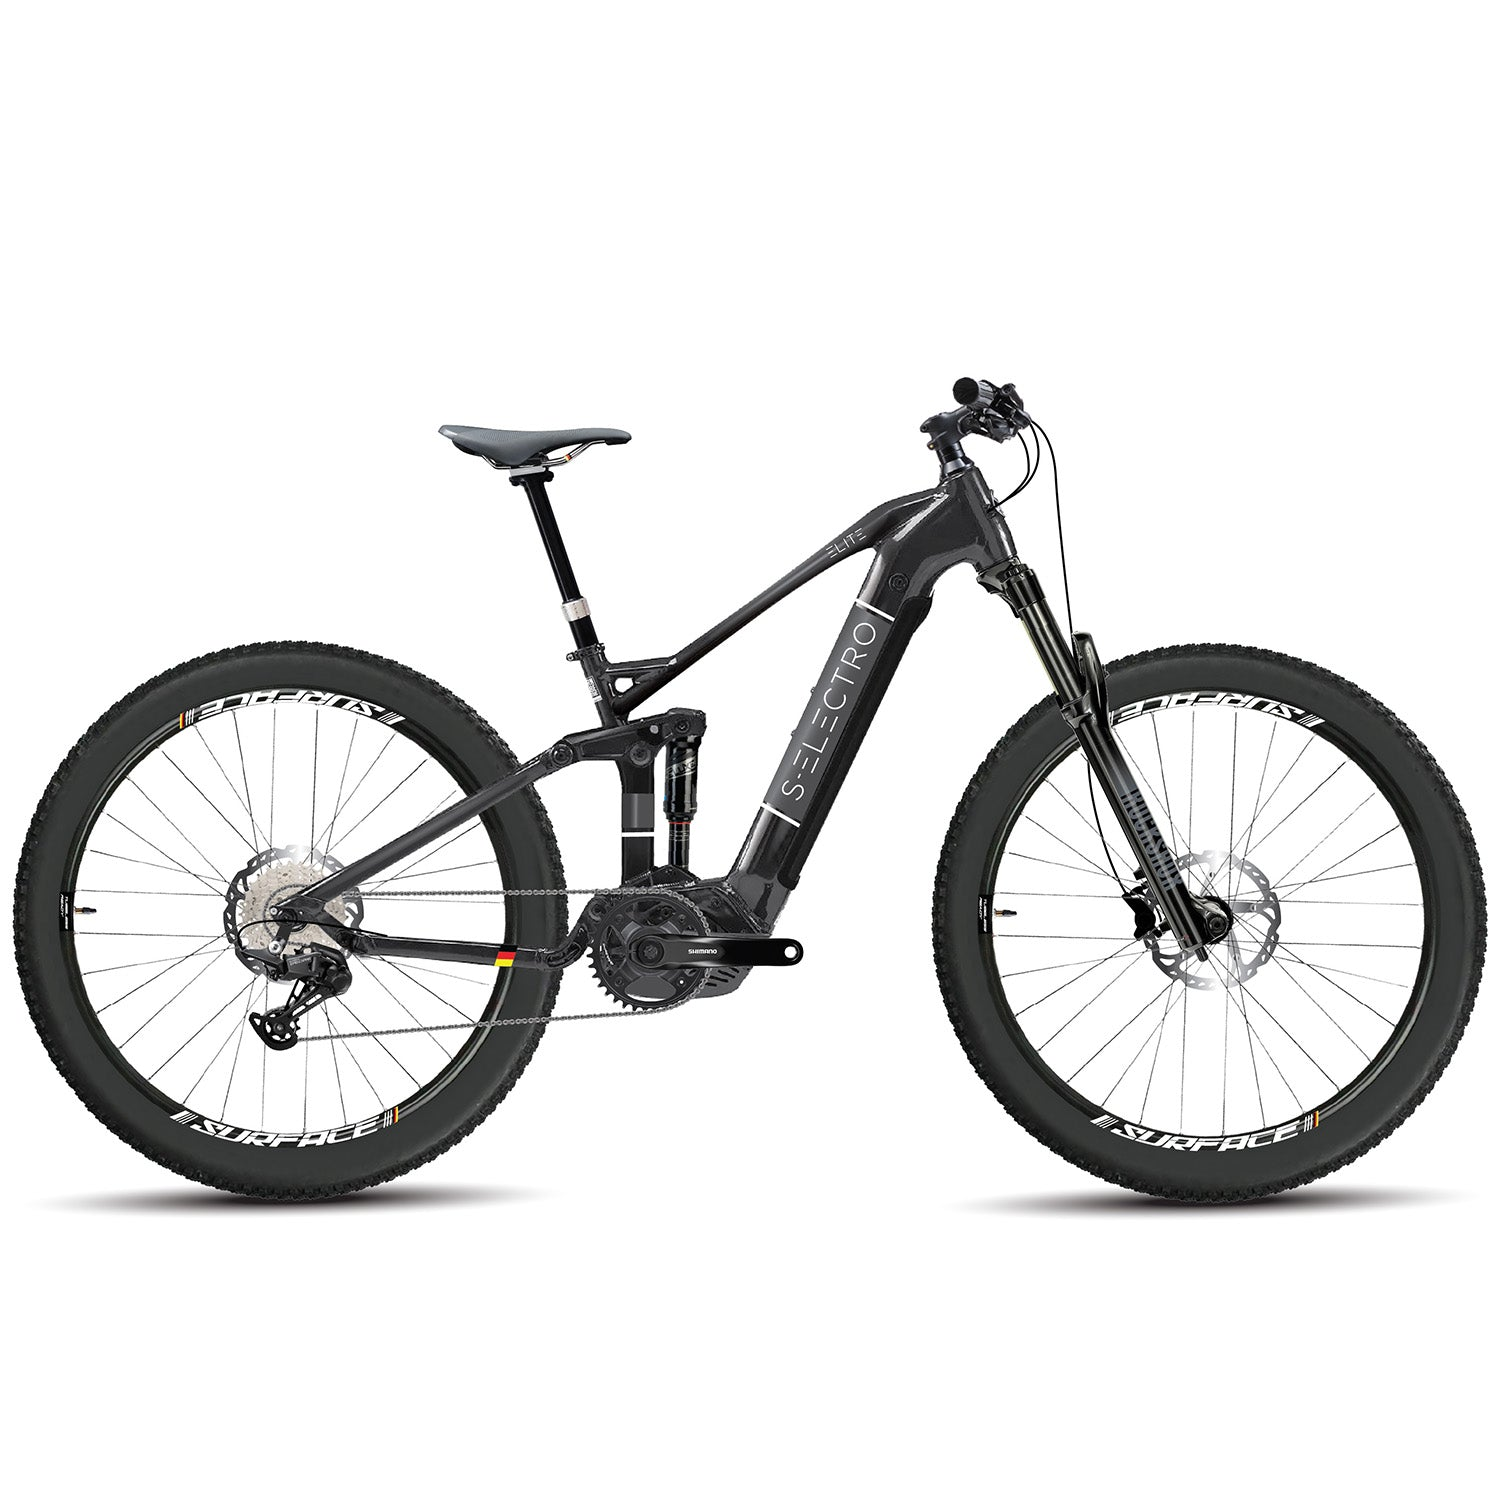 S-Electro Elite AL 2 - Alloy E-enduro Bike